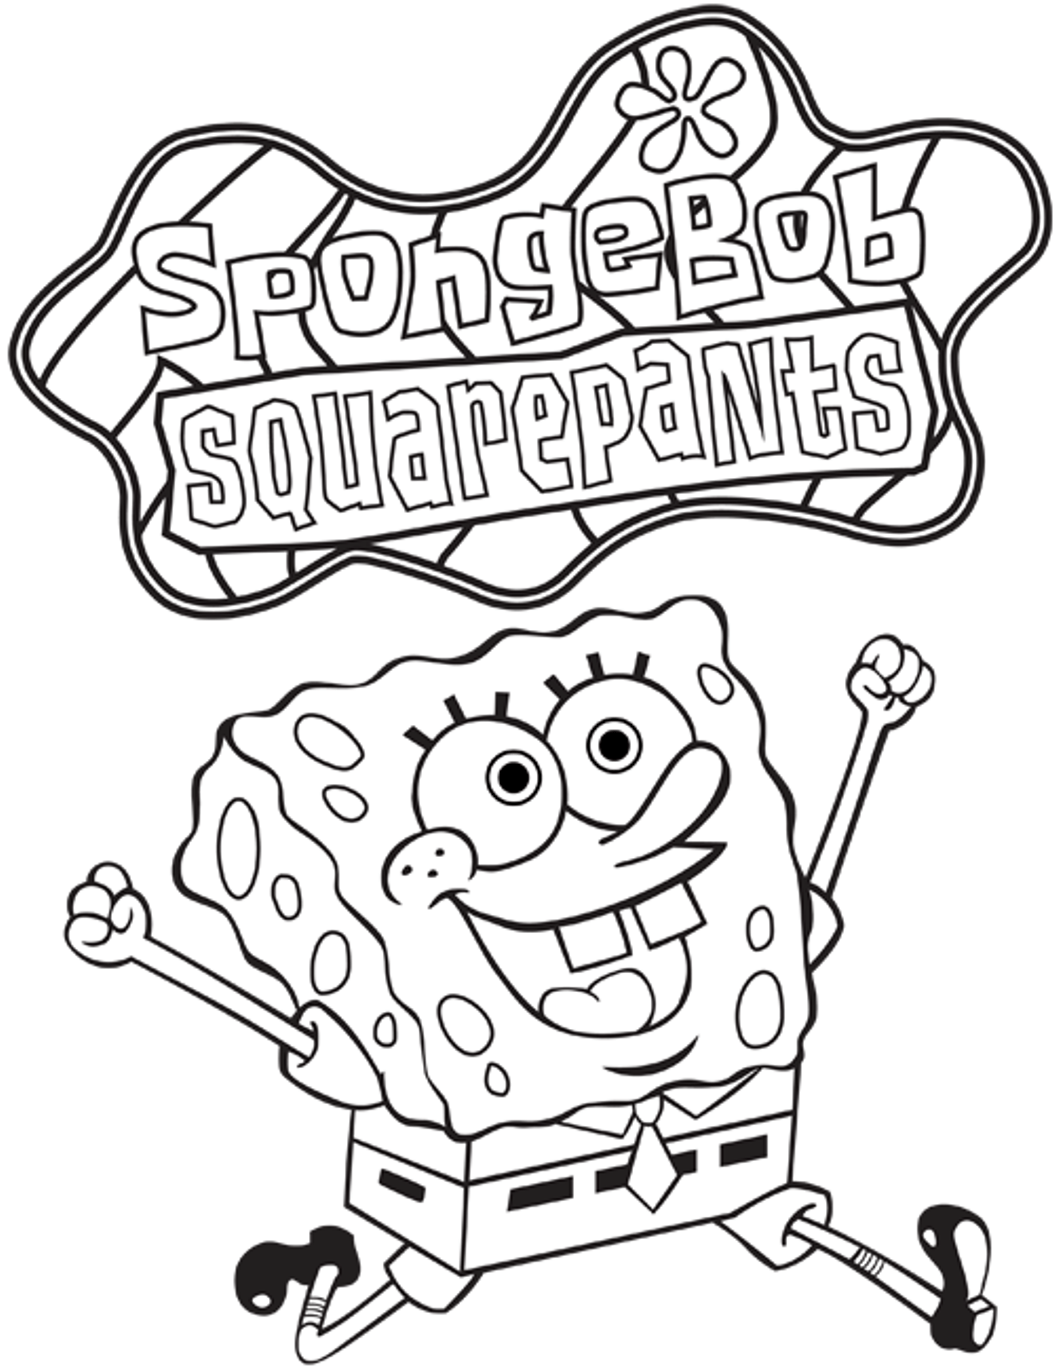 1055x1372 Nice Spongebob Squarepants Printables Cool Coloring Page Gallery